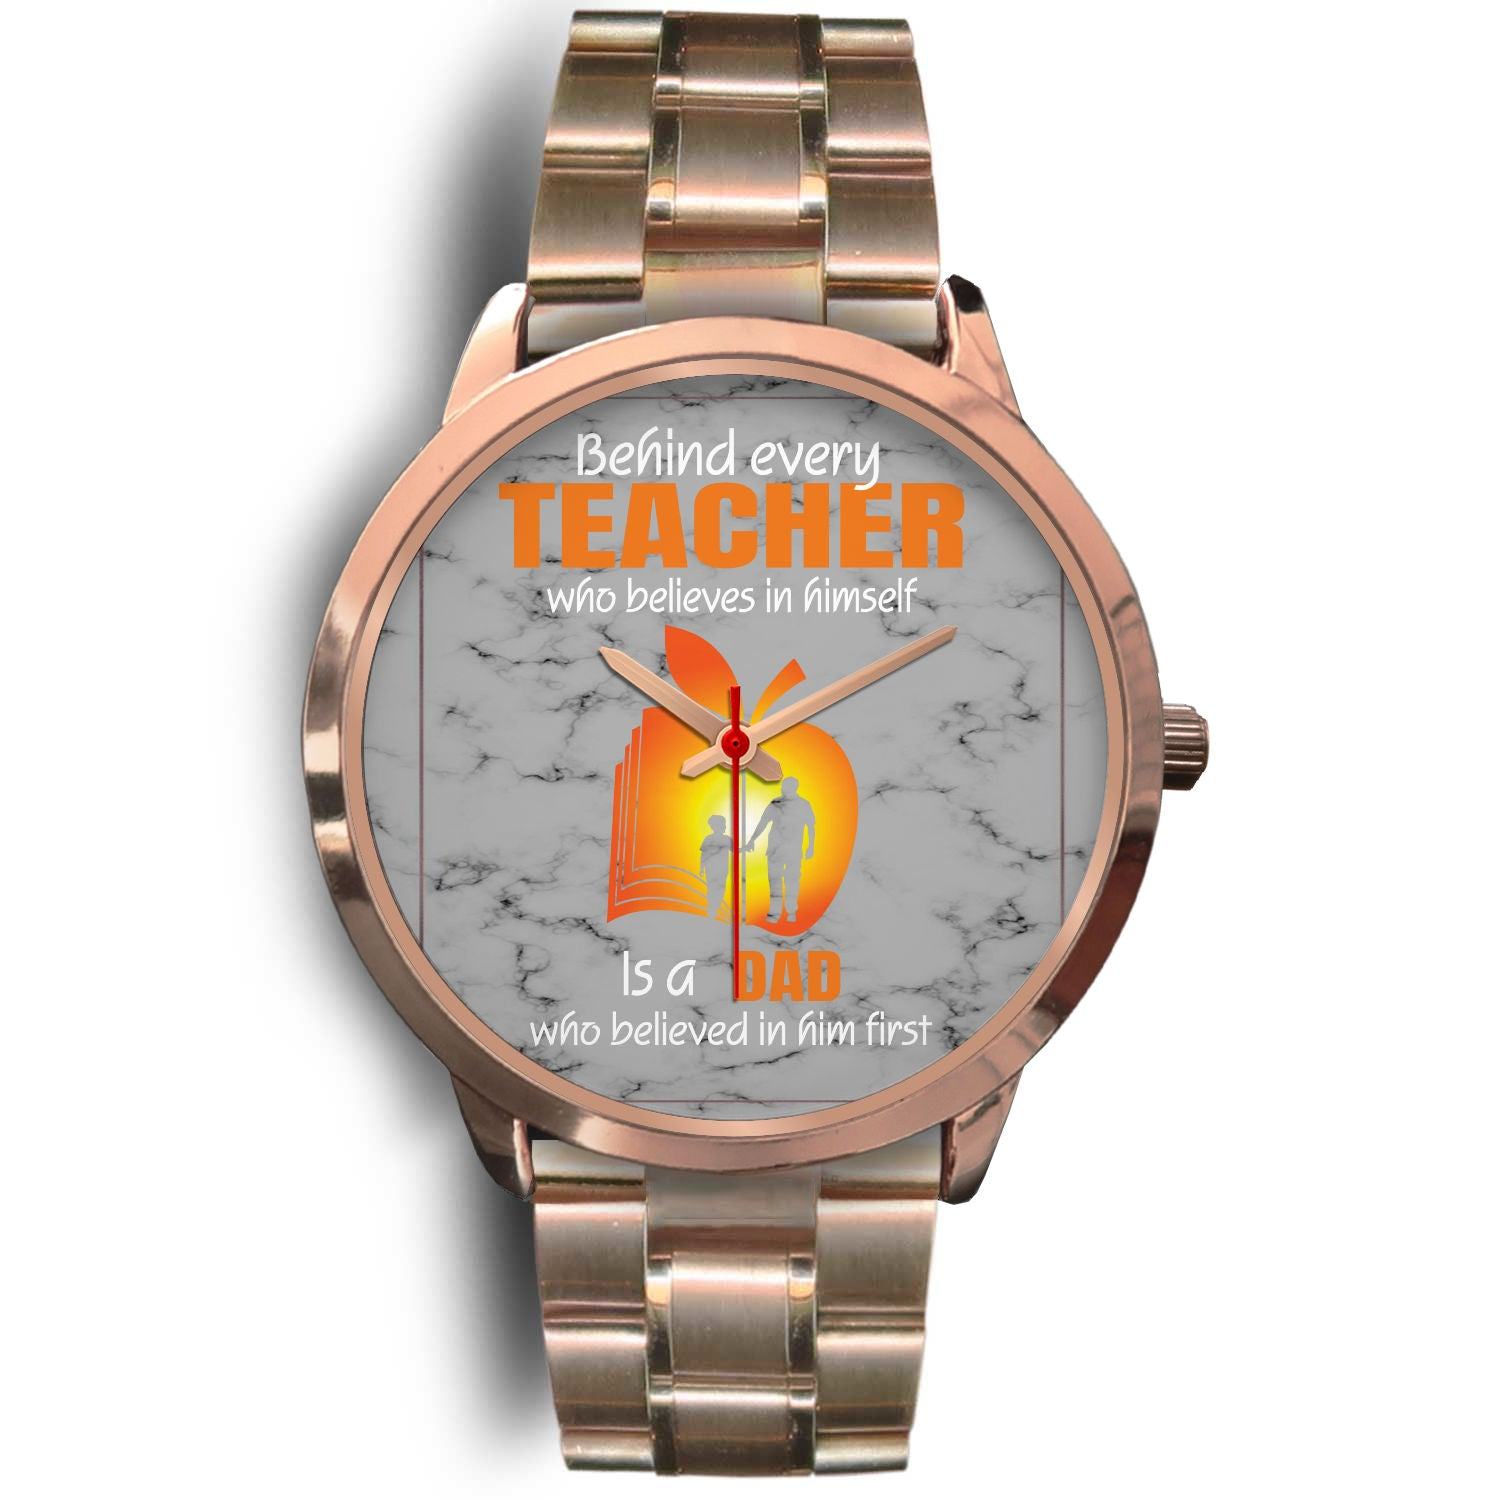 VIRA rose gold stainless steel watch for awesome teachers & dads